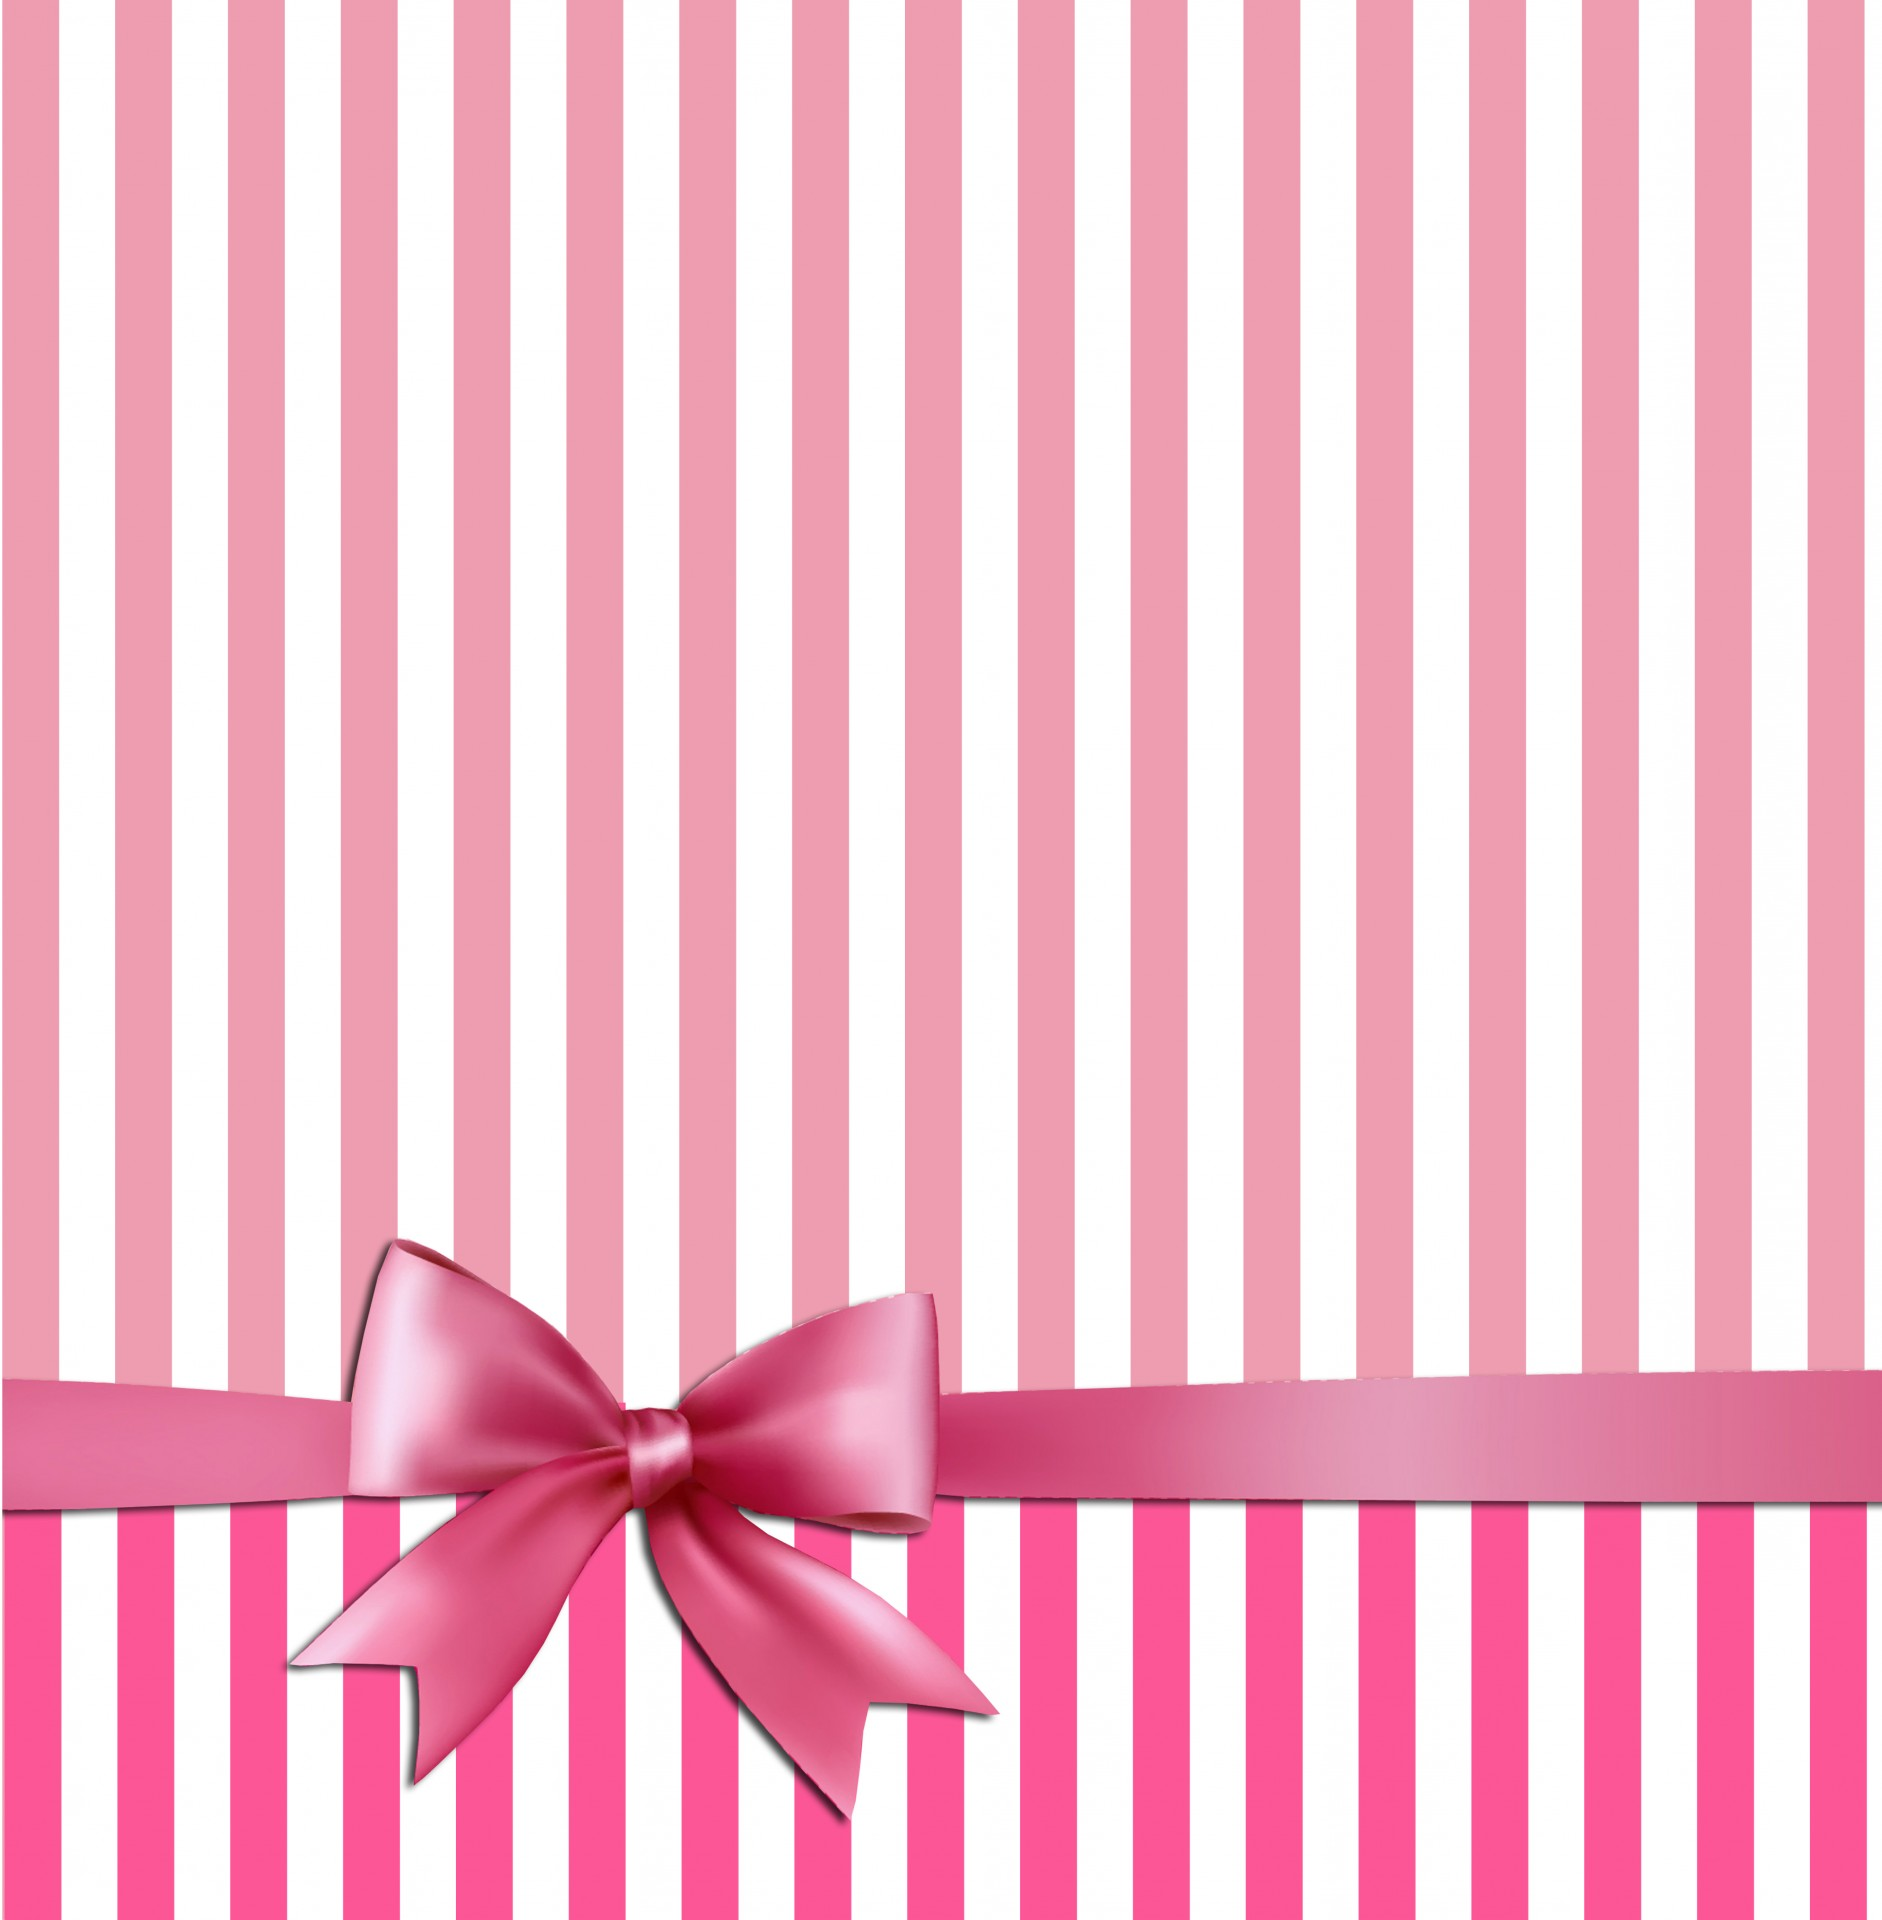 Pink White Stripes  Bow Background Free Stock Photo  Public Domain Pictures